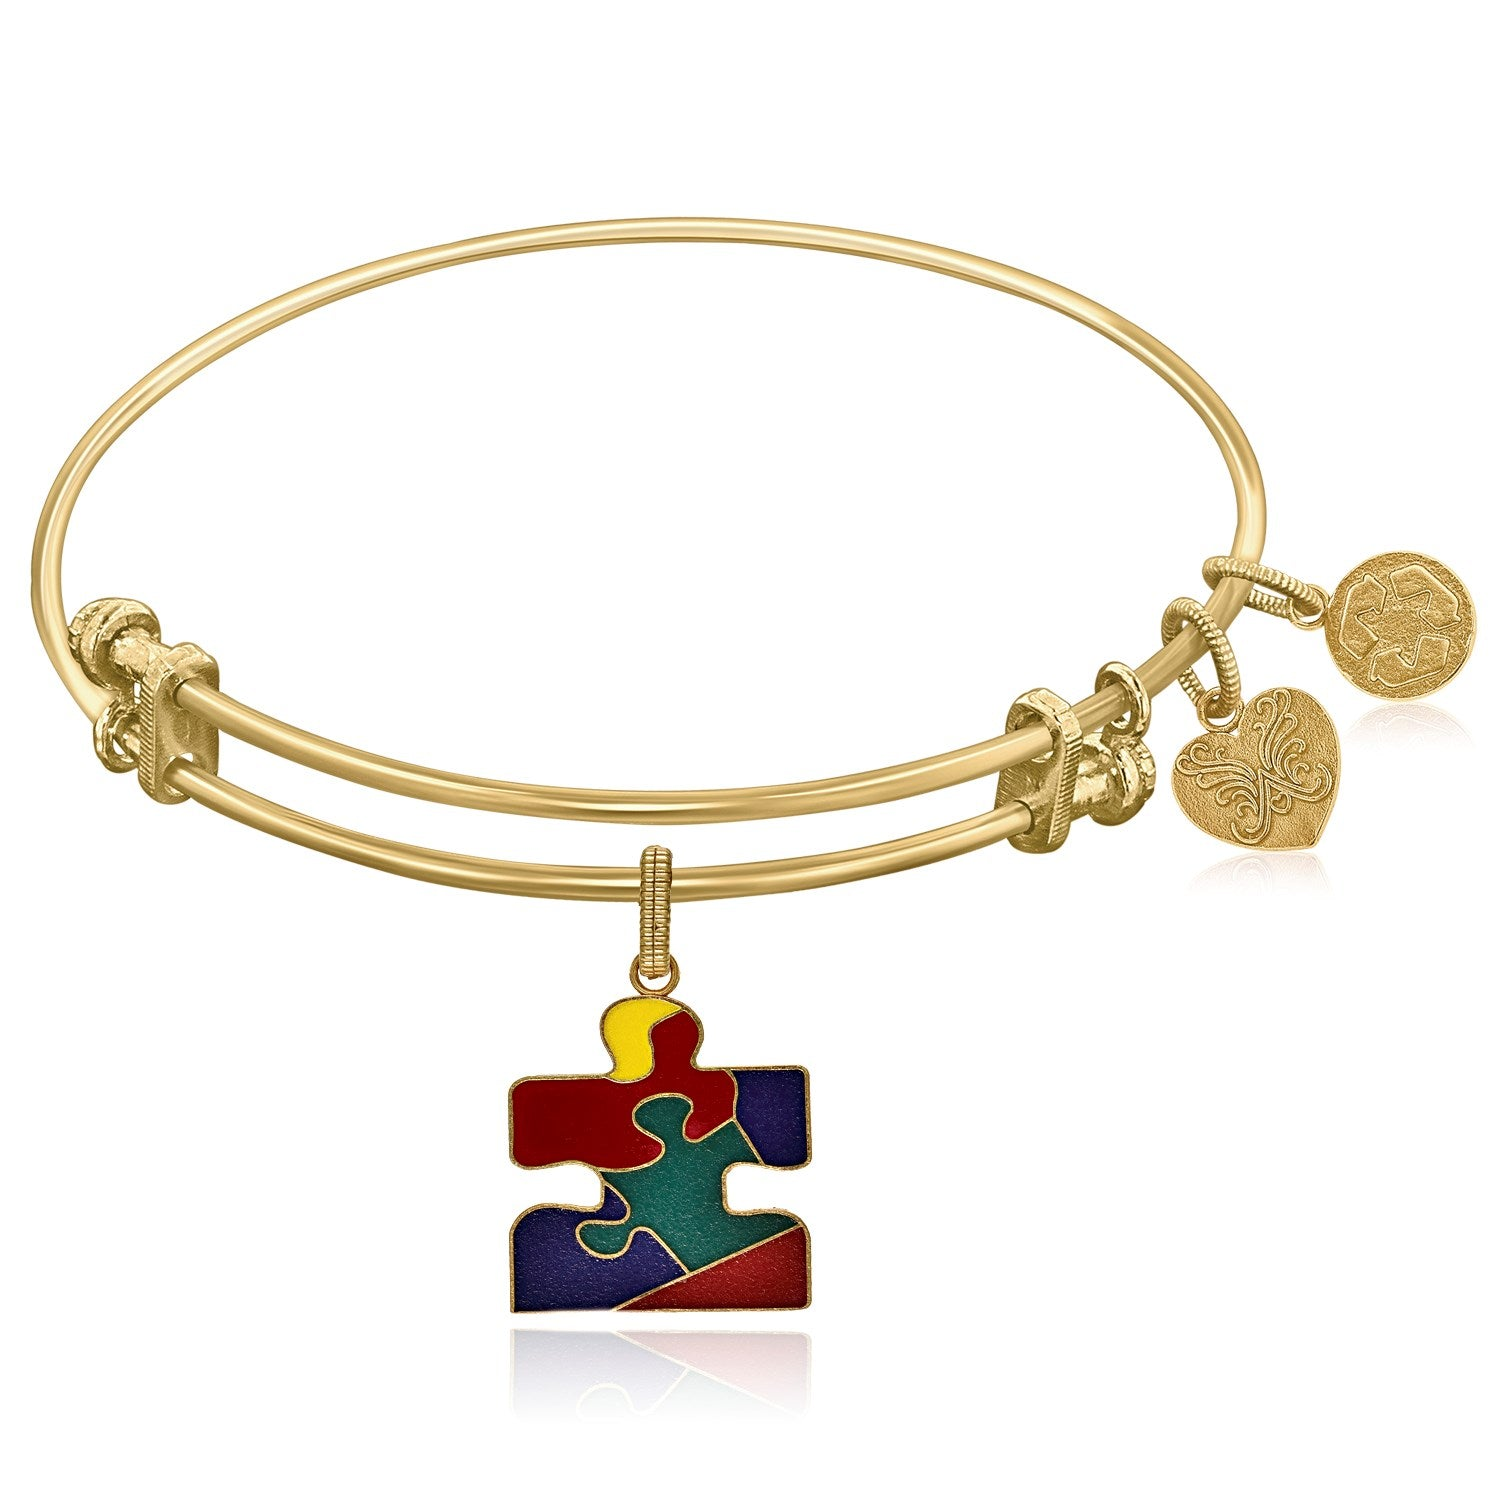 Expandable Yellow Tone Brass Bangle with Autism Awareness Enamel Symbol